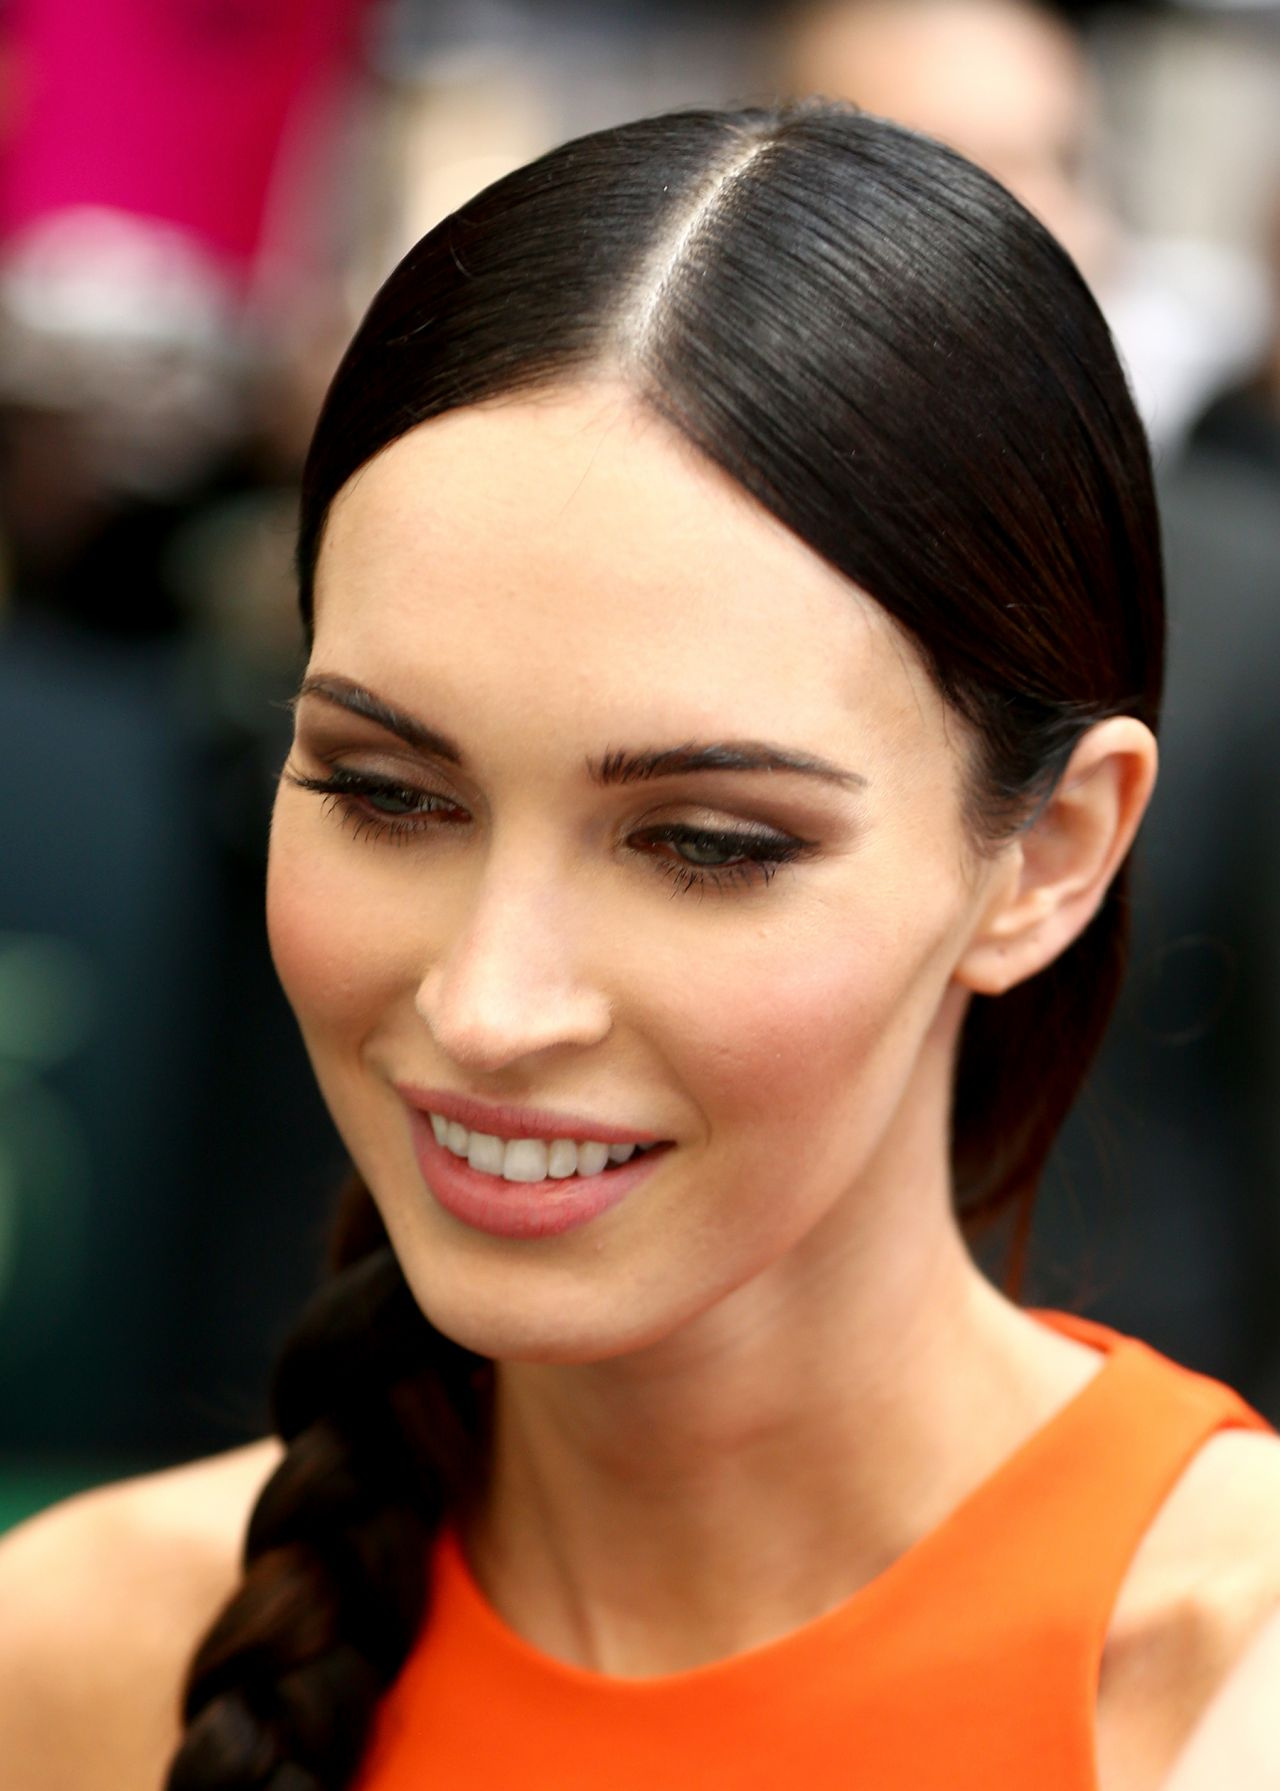 Megan Fox Teenage Mutant Ninja Turtles Premiere In Sydney